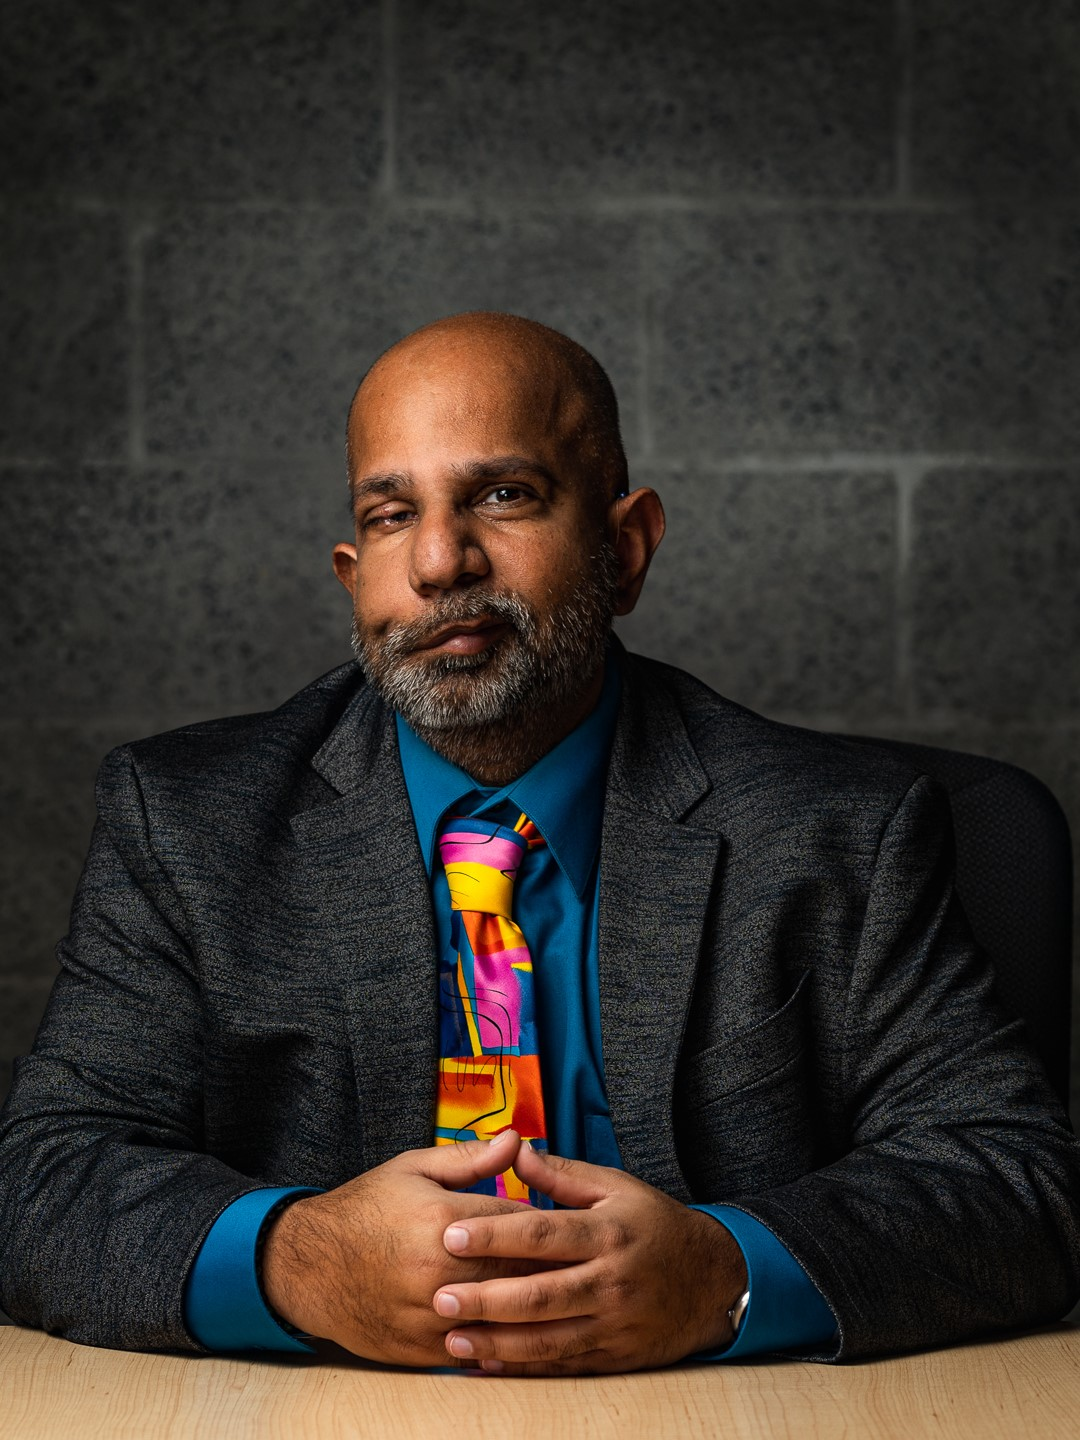 Vikram is wearing a suit with a colourful tie and looking into the camera.